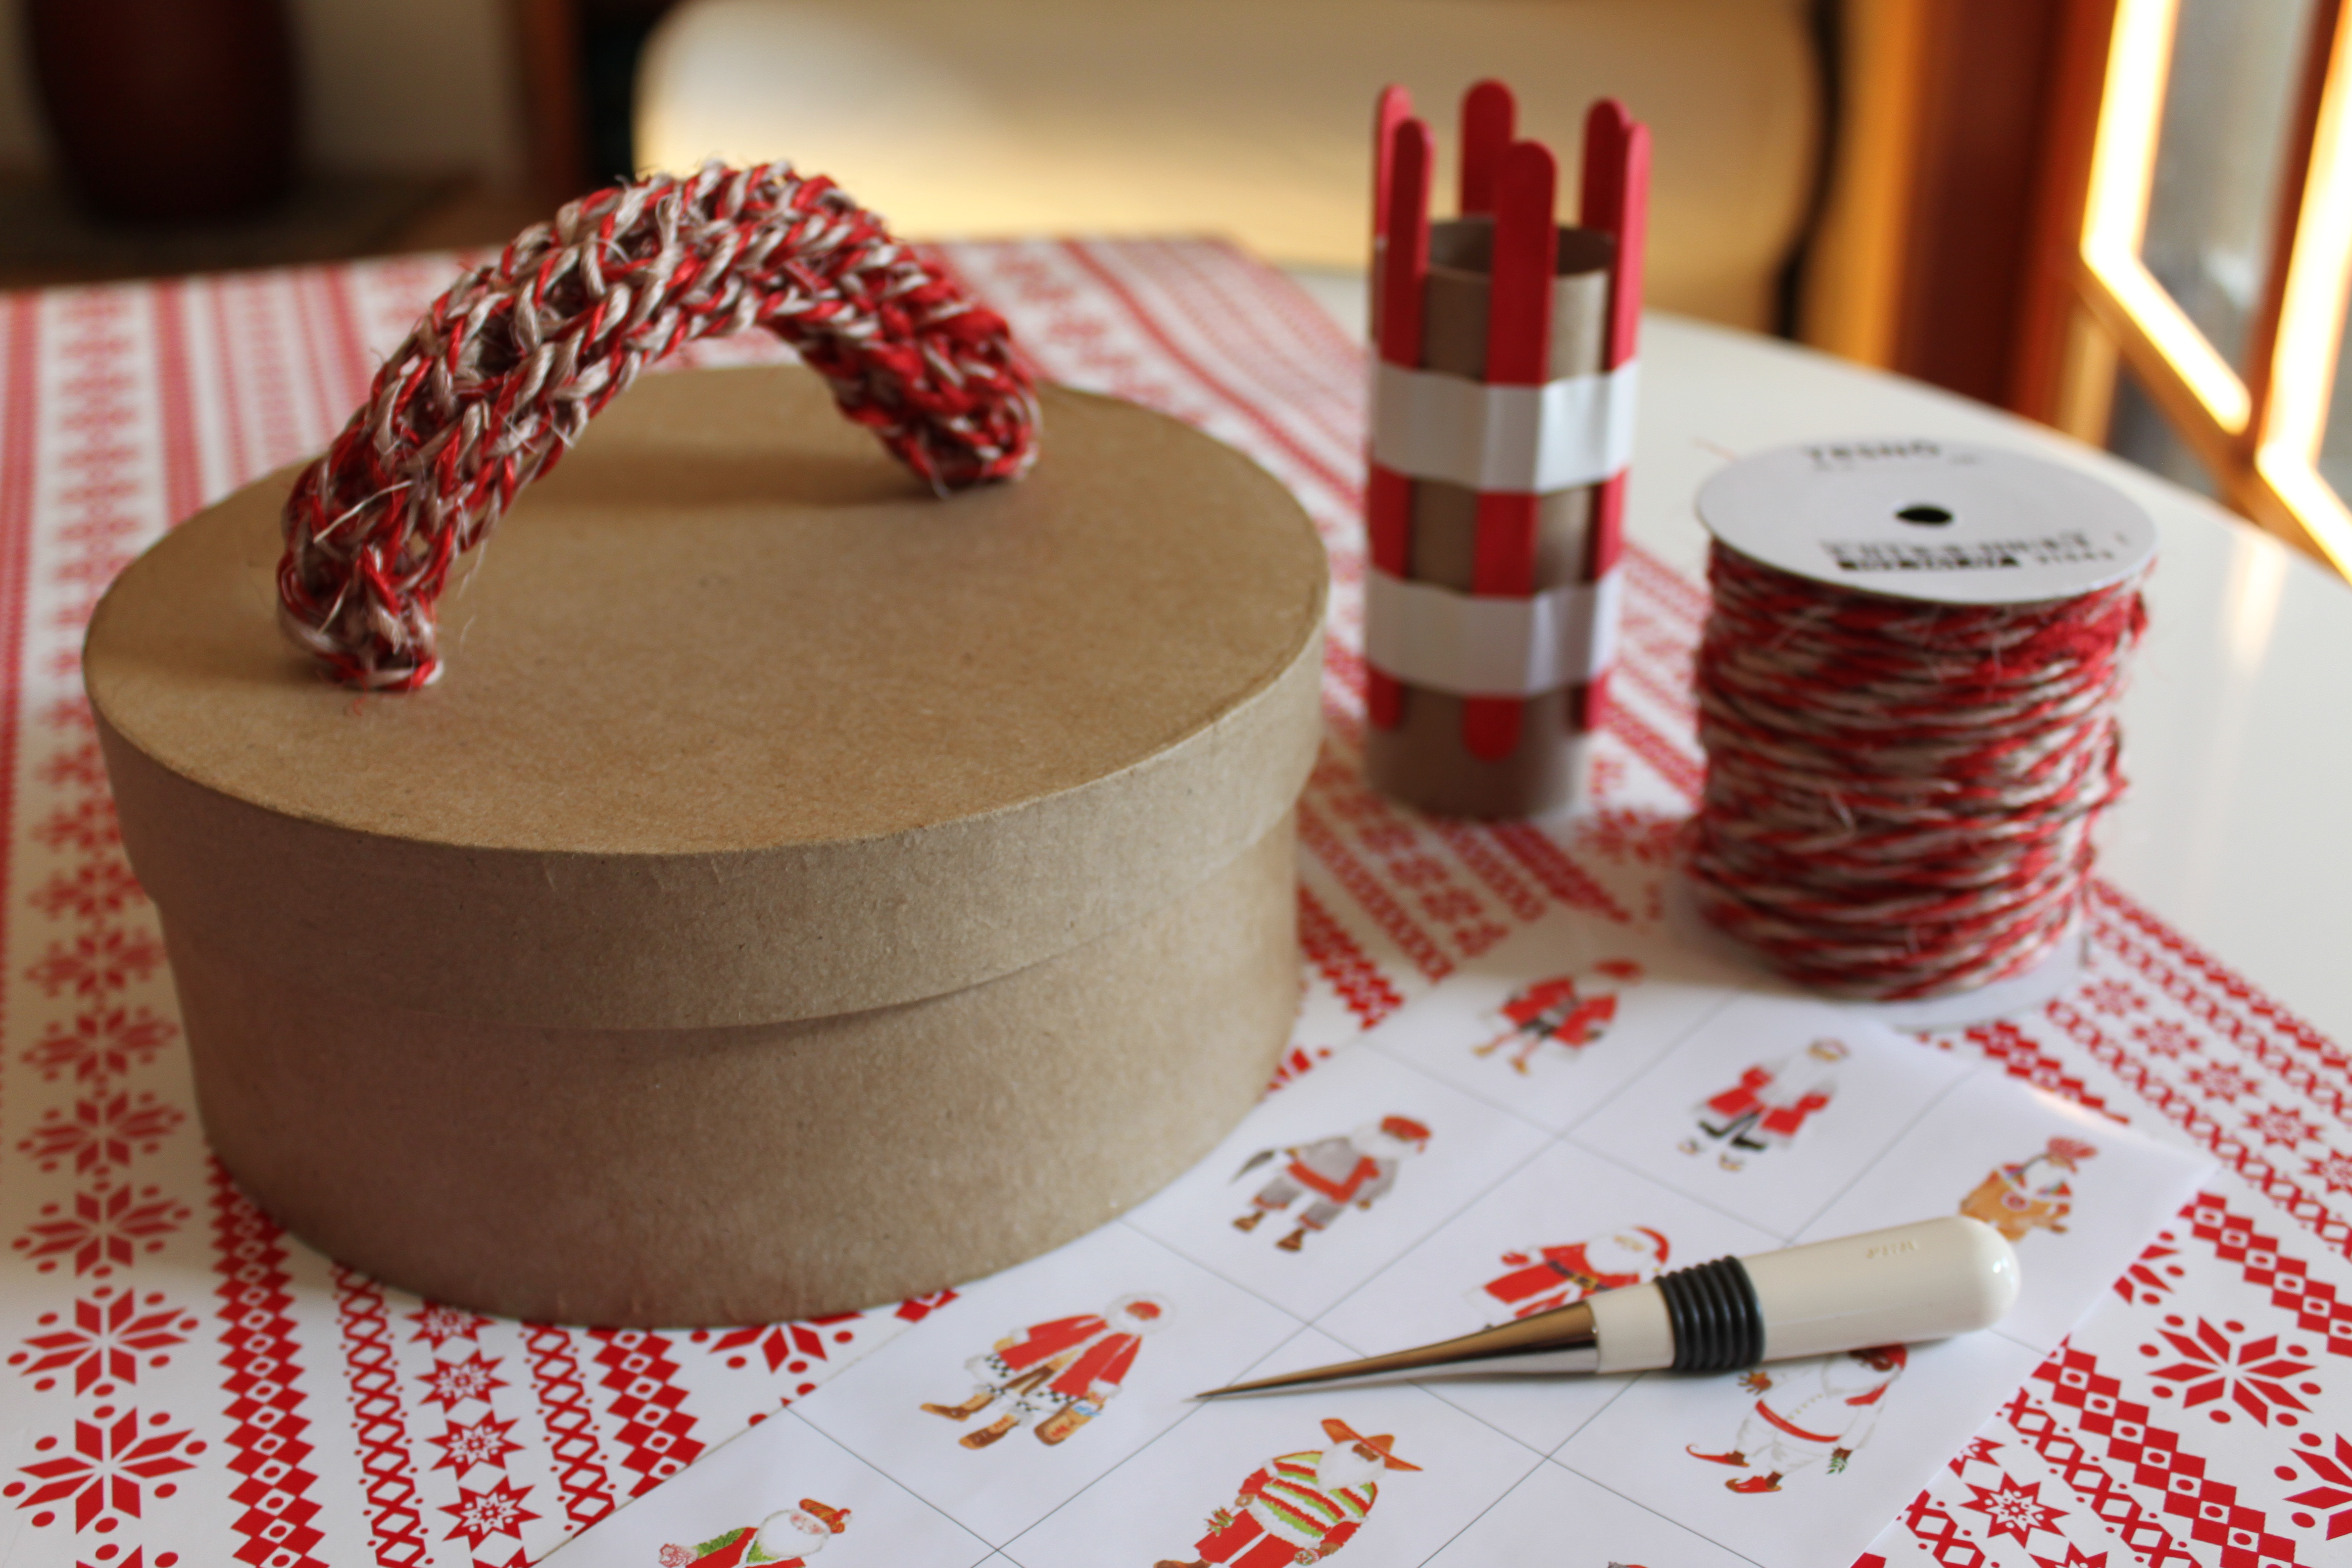 Knitting Nancy Toilet Paper Roll : Moved permanently